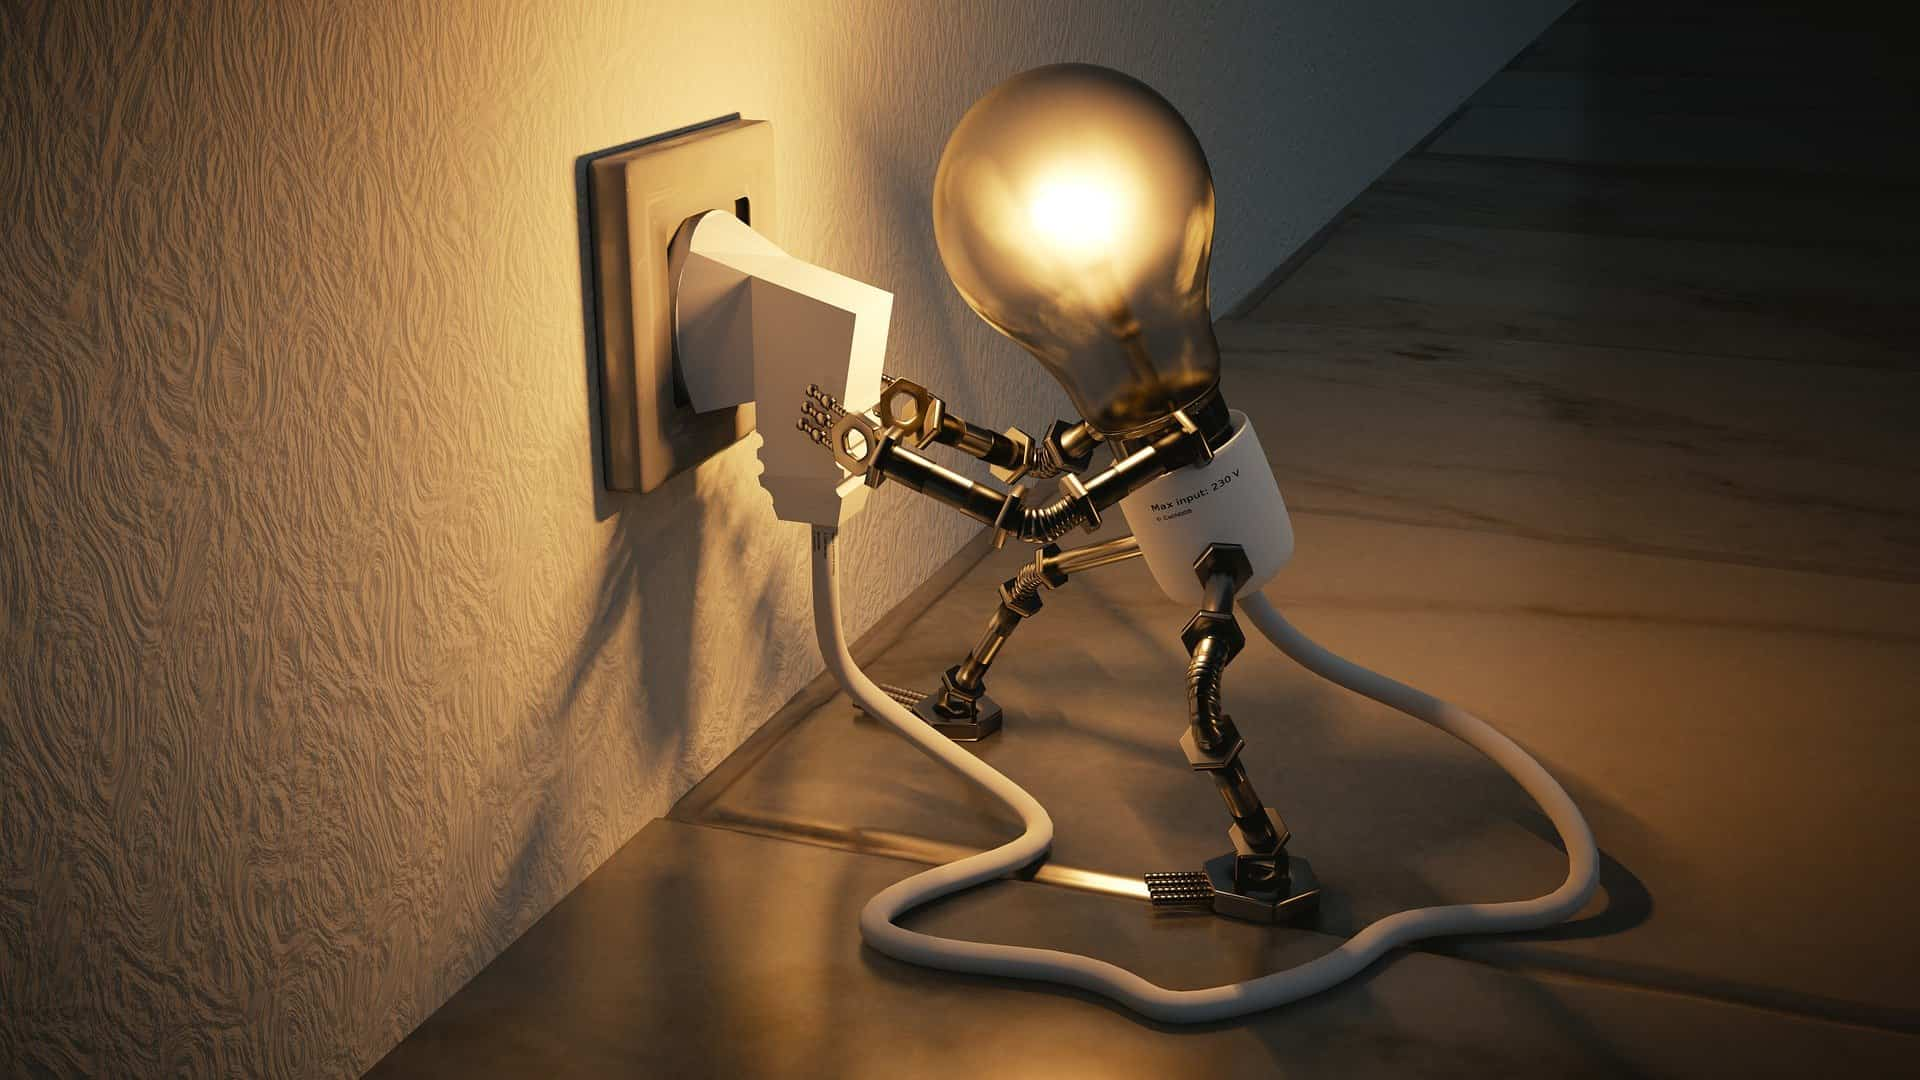 Home Electrical Upgrades You Need To Invest In. The animation of the lamp and cord